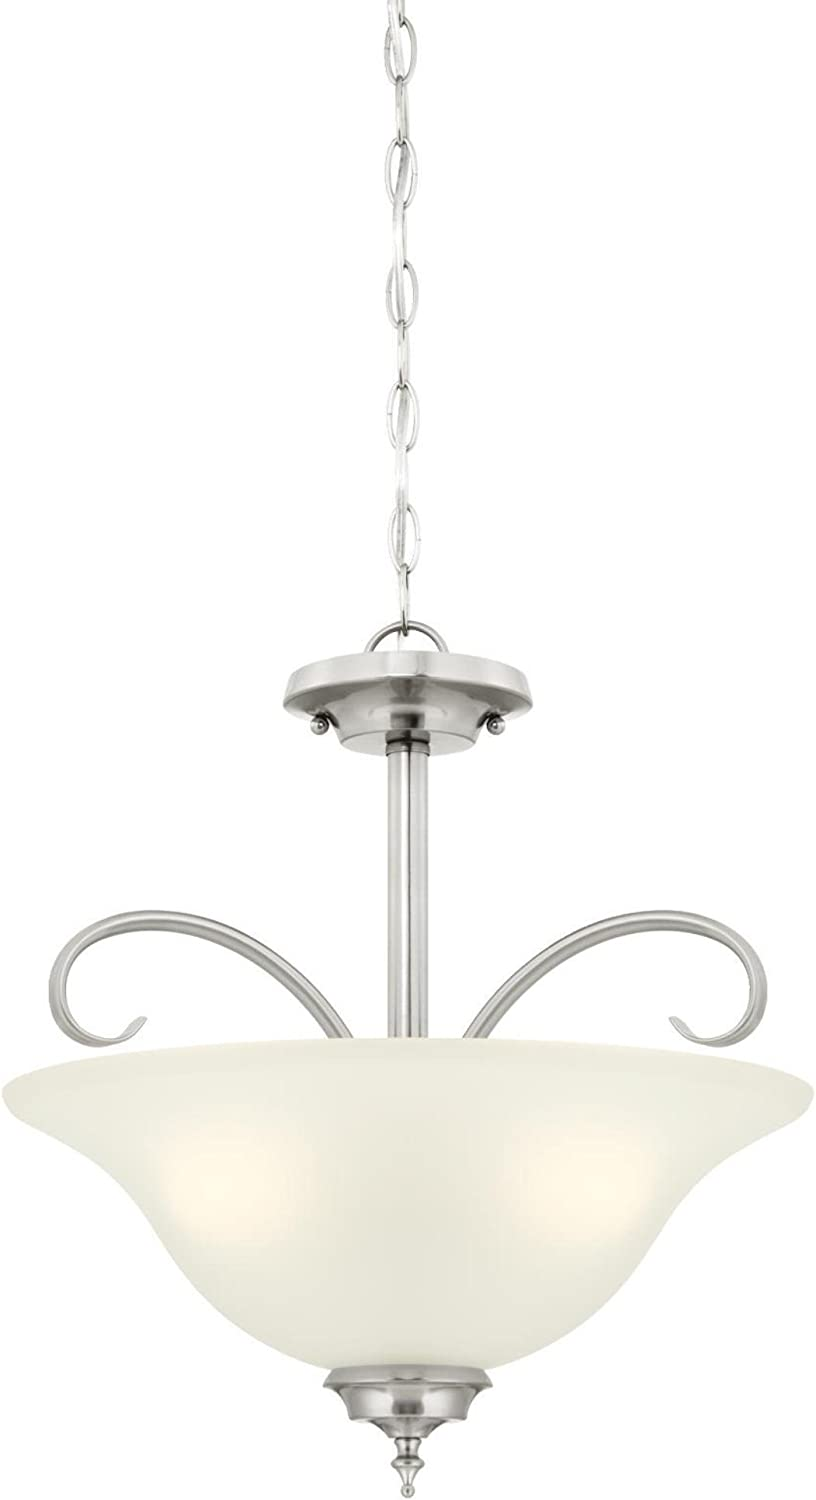 Westinghouse Lighting 6305400 Harwell Three-Light Indoor Congreenible Pendant Semi-Flush Ceiling Fixture, Brushed Nickel Finish with Frosted Glass,